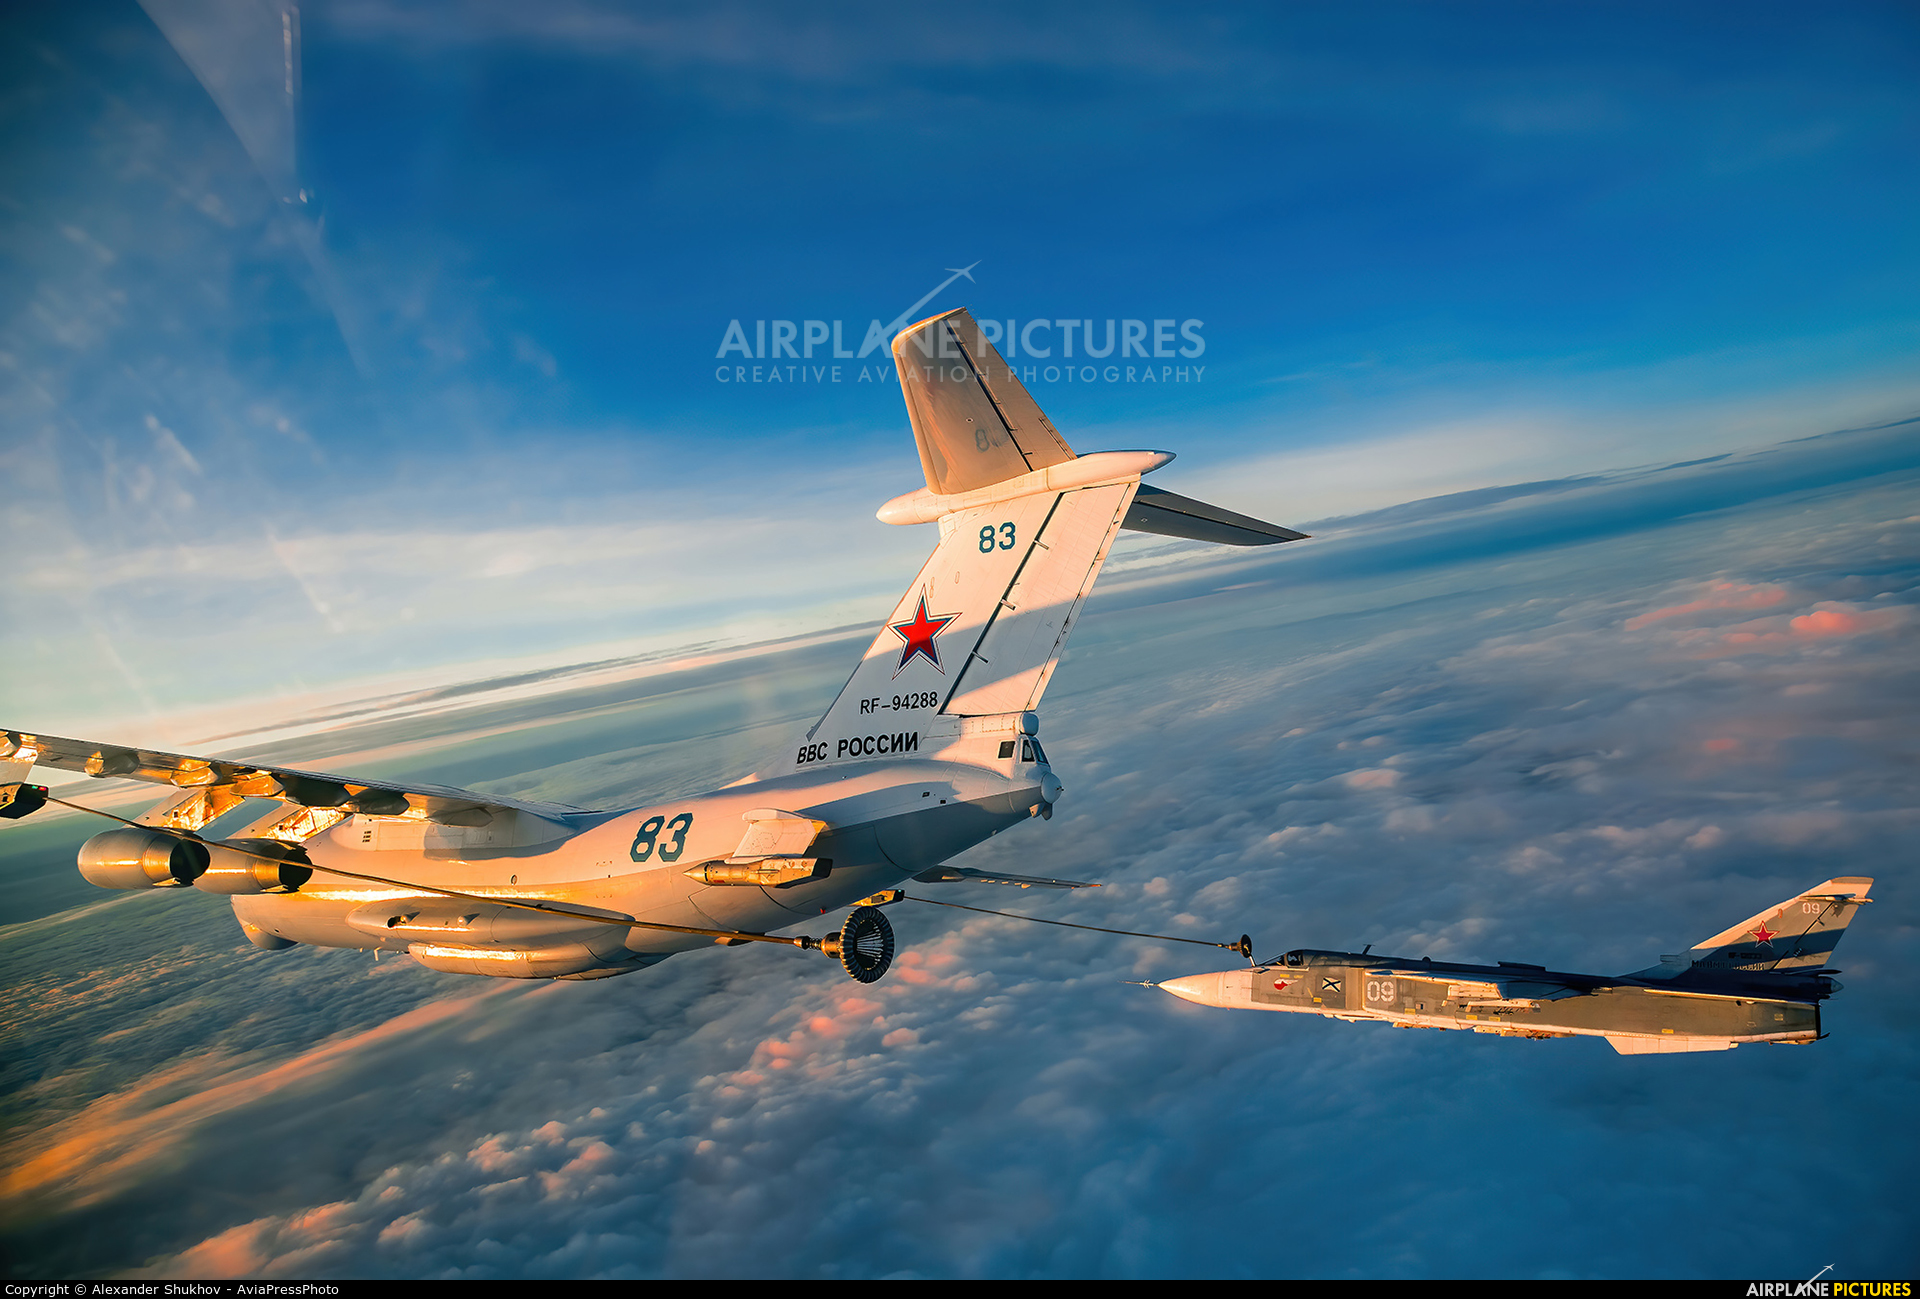 Russia - Air Force RF-94288 aircraft at In Flight - Russia